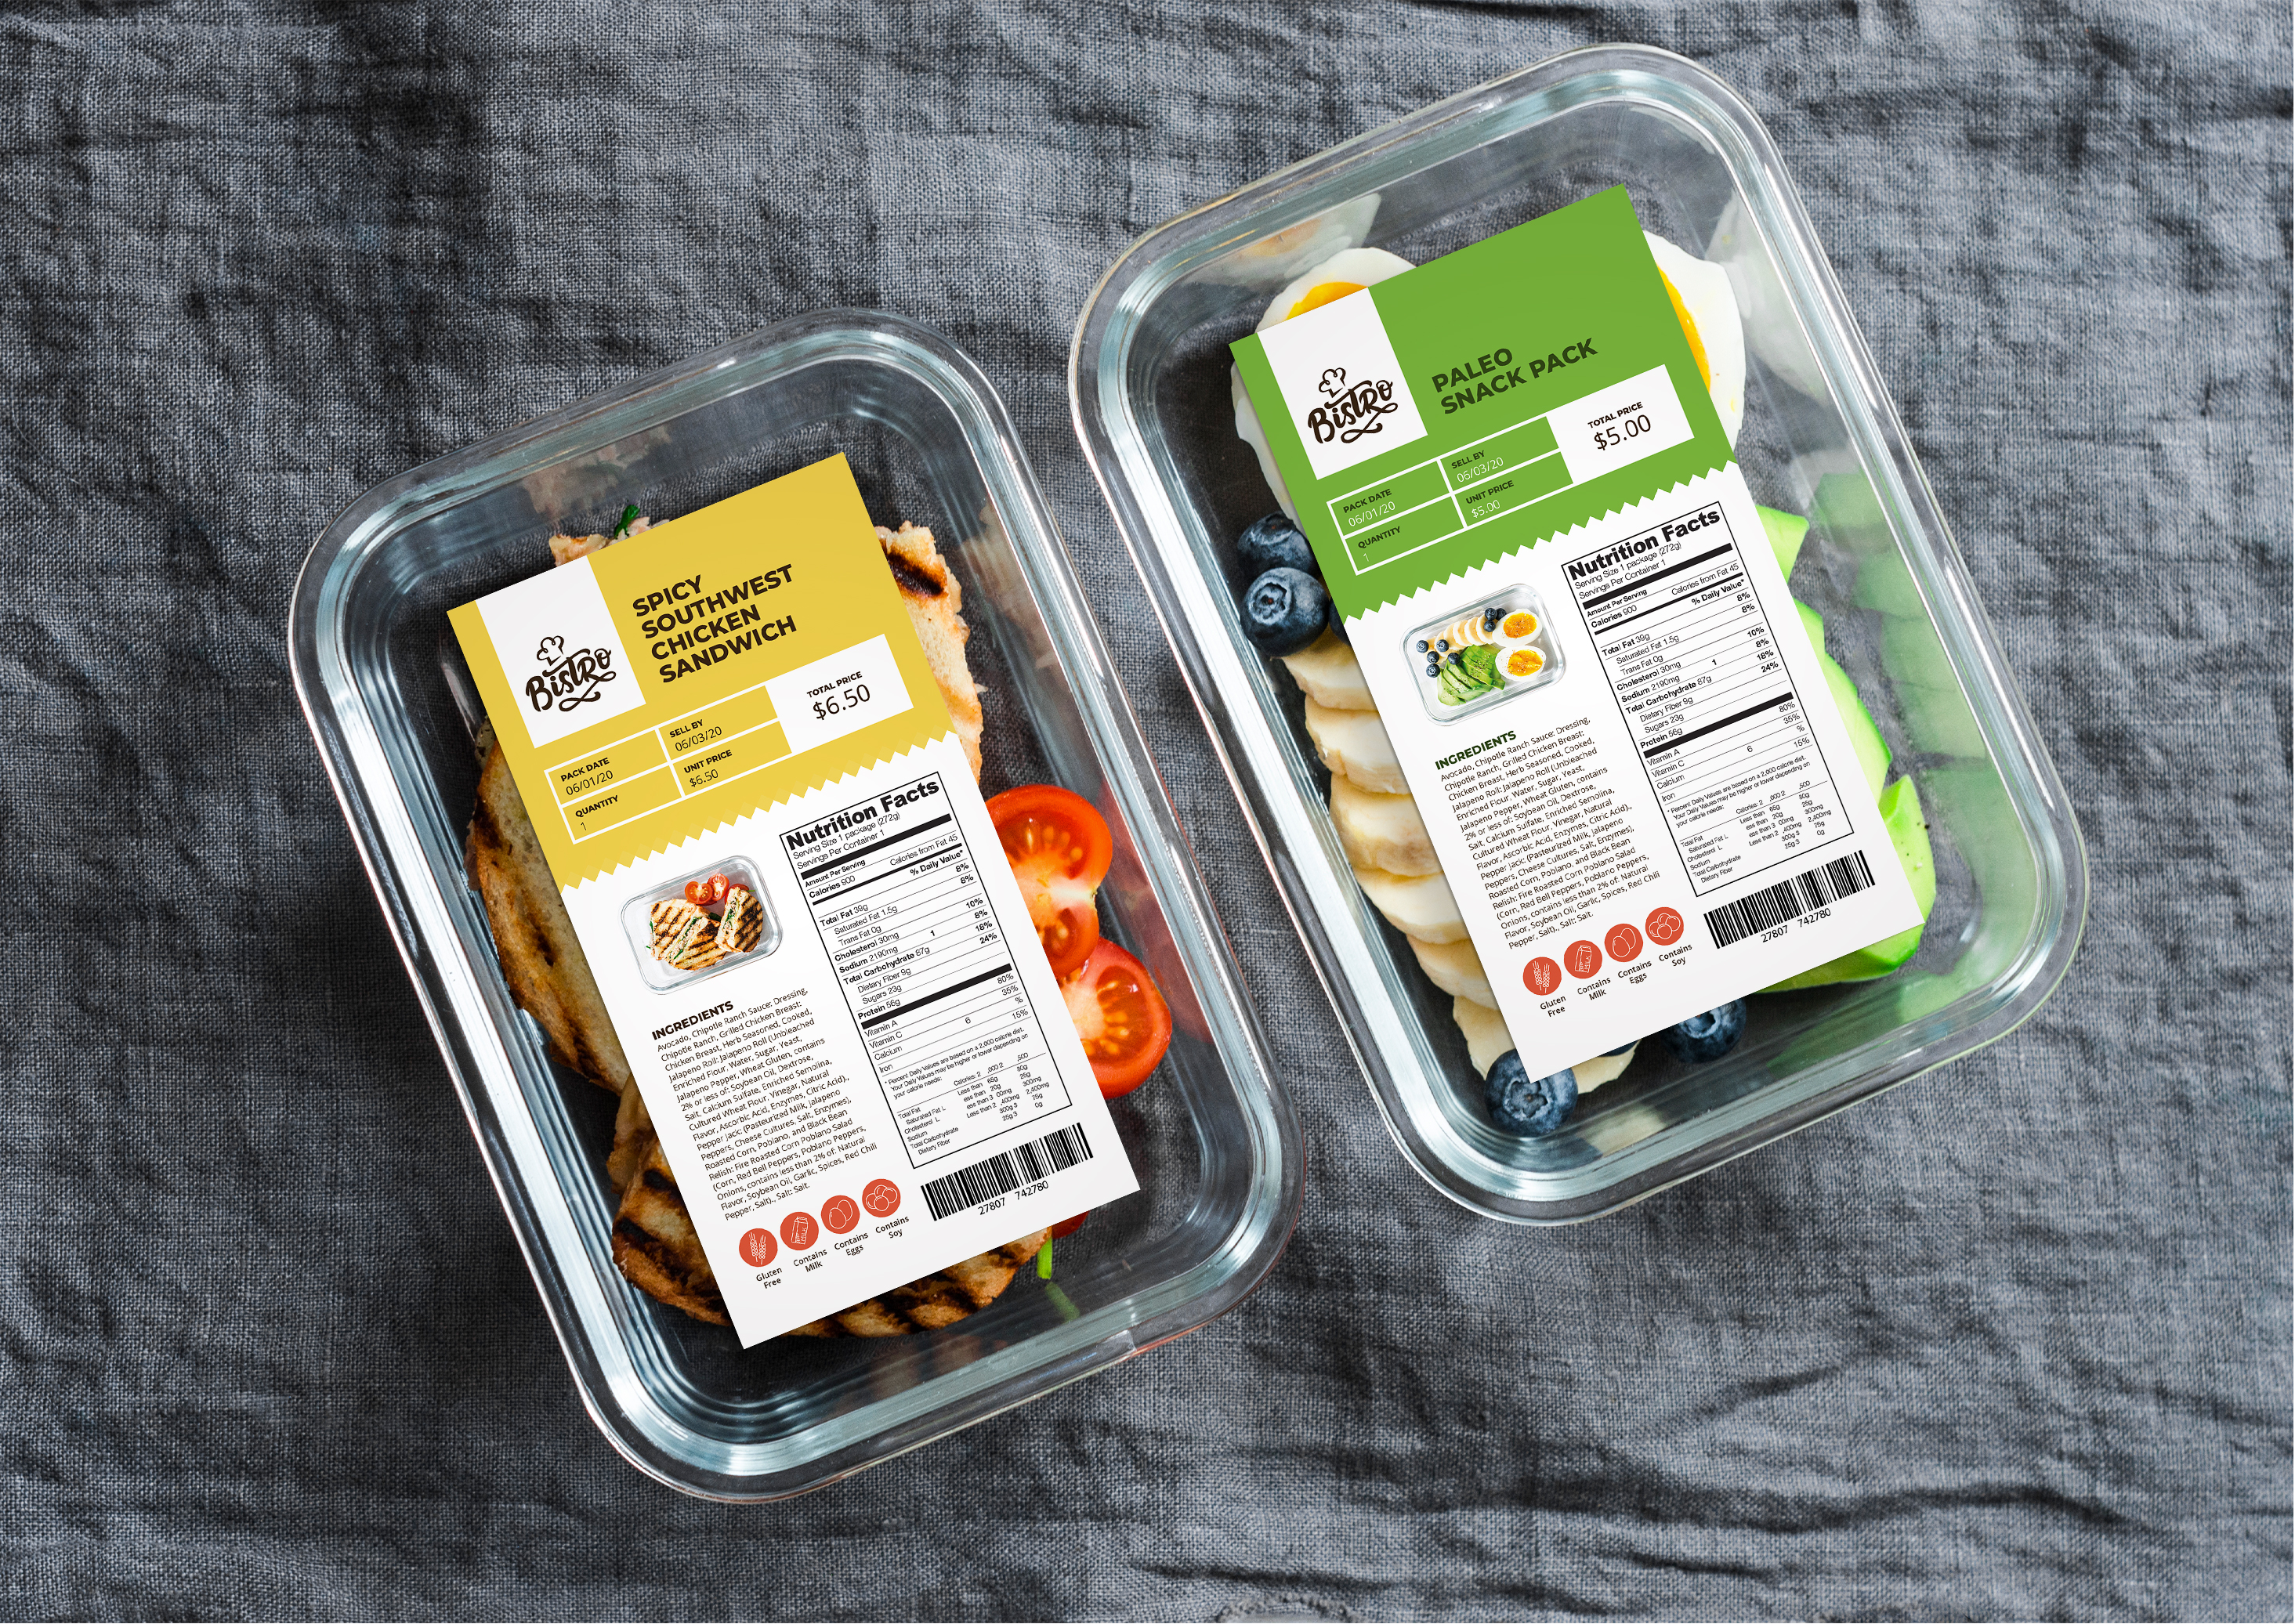 Clamshell packaging is one type of prime label offered by Taylor